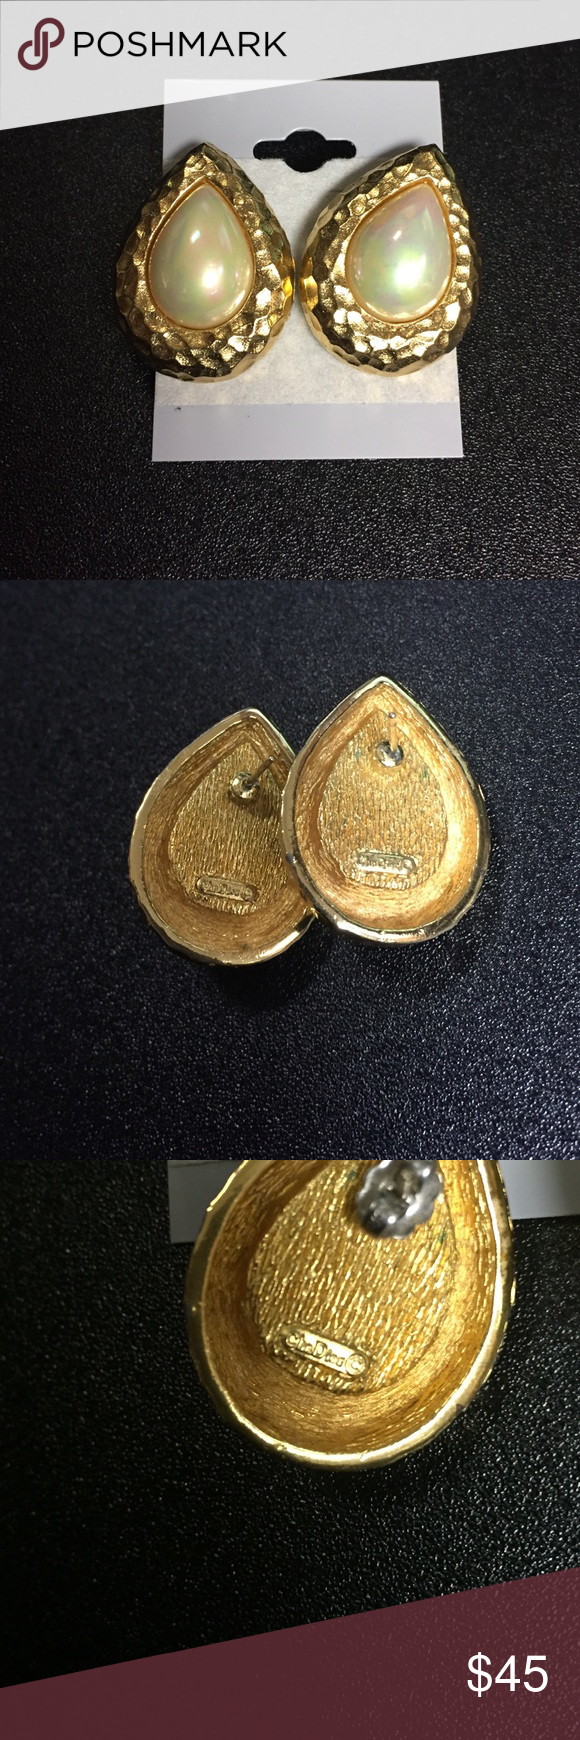 Vintage Christian Dior Gold toned Earrings In good Vintage condition! 🚫Trades! Open to reasonable offers through the offer button! Christian Dior Jewelry Earrings